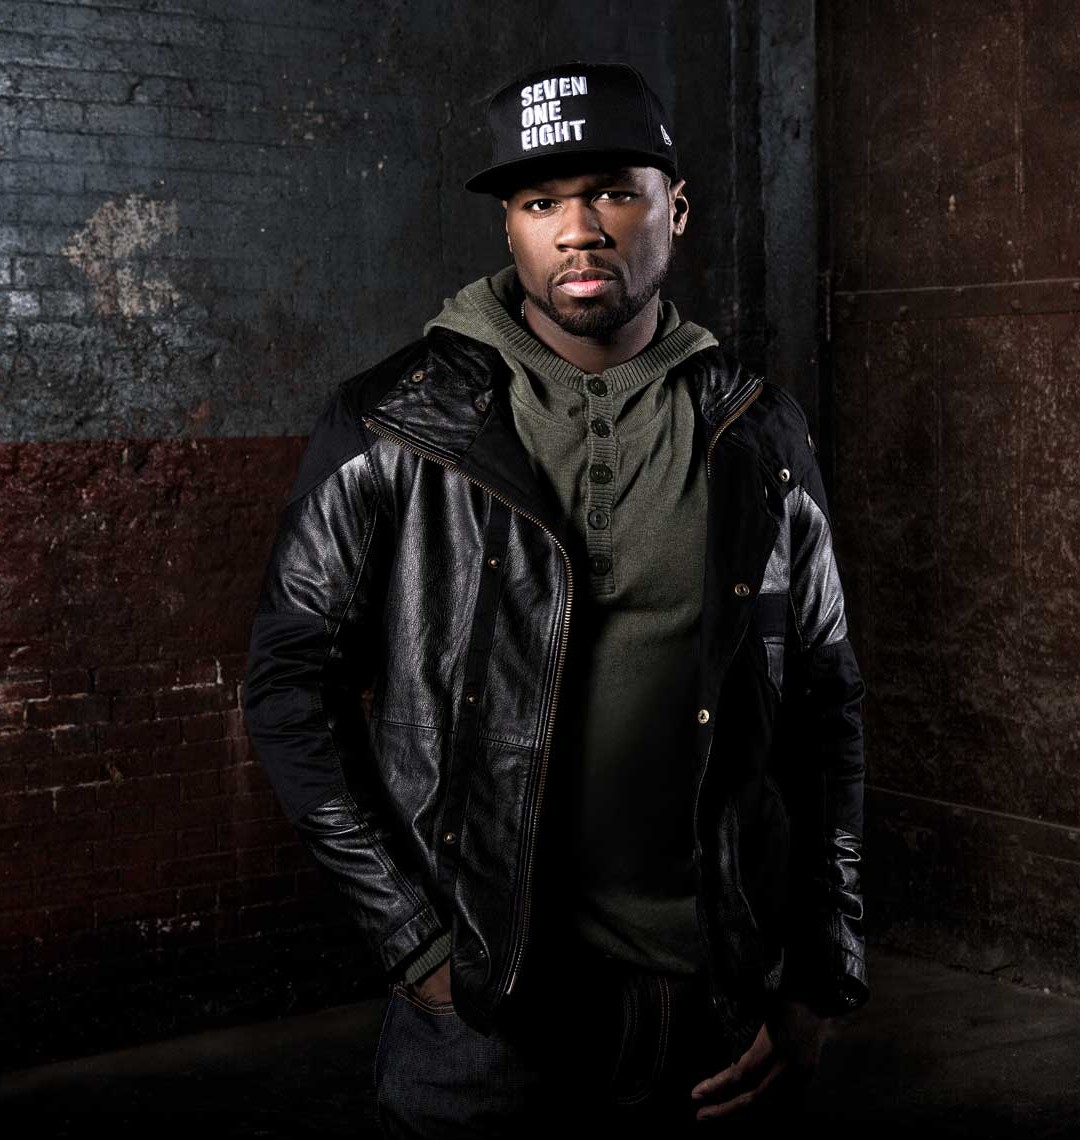 50 Cent Wallpapers High Resolution and Quality Download